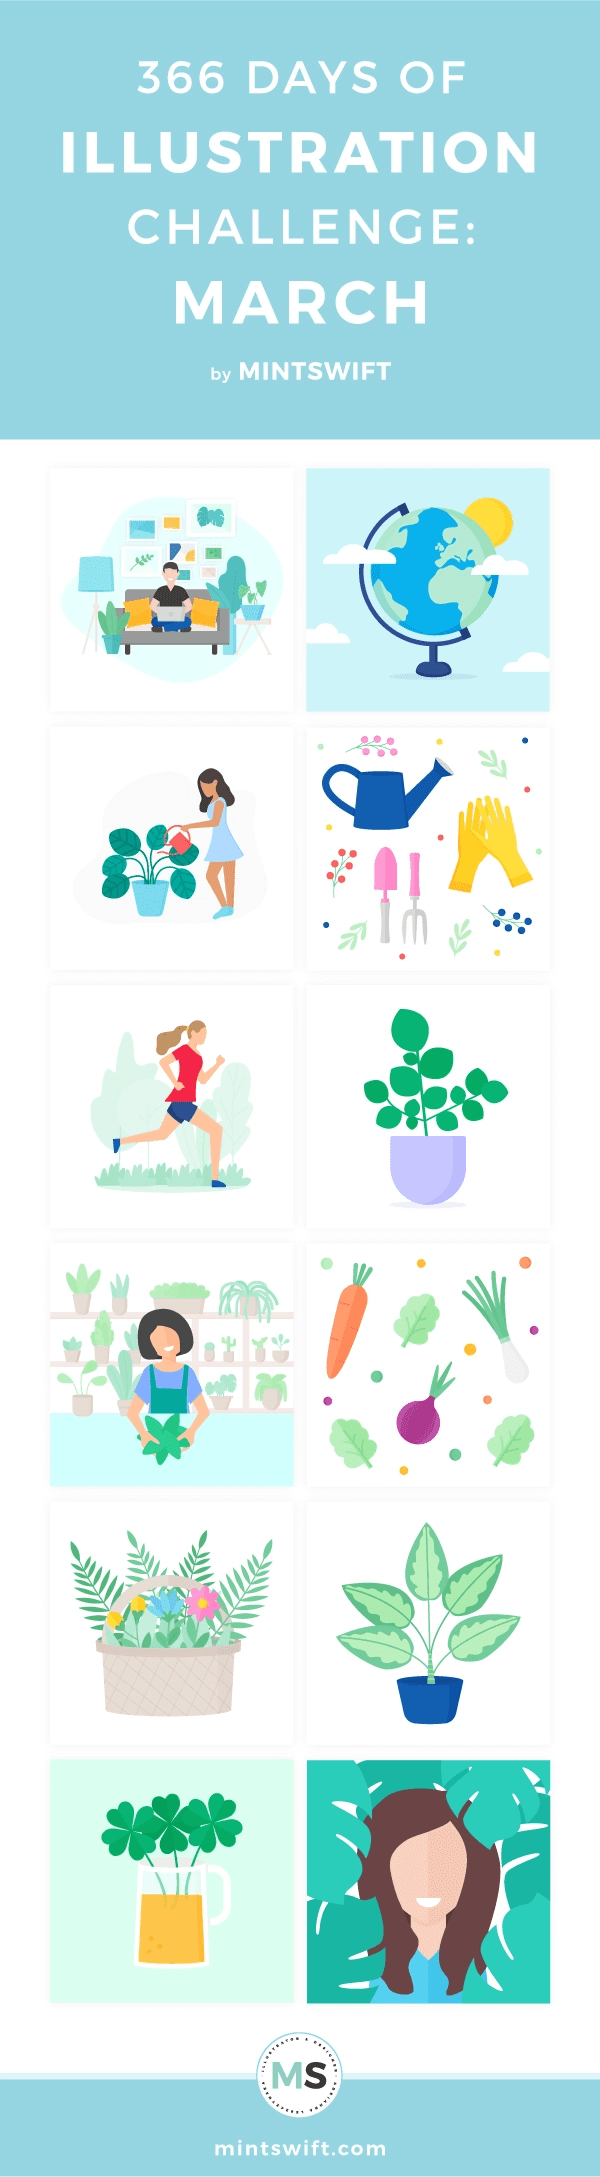 Top 12 vector illustrations inspired by spring, flowers, plants, vegetables from the third month of my one year of illustration challenge in flat design style